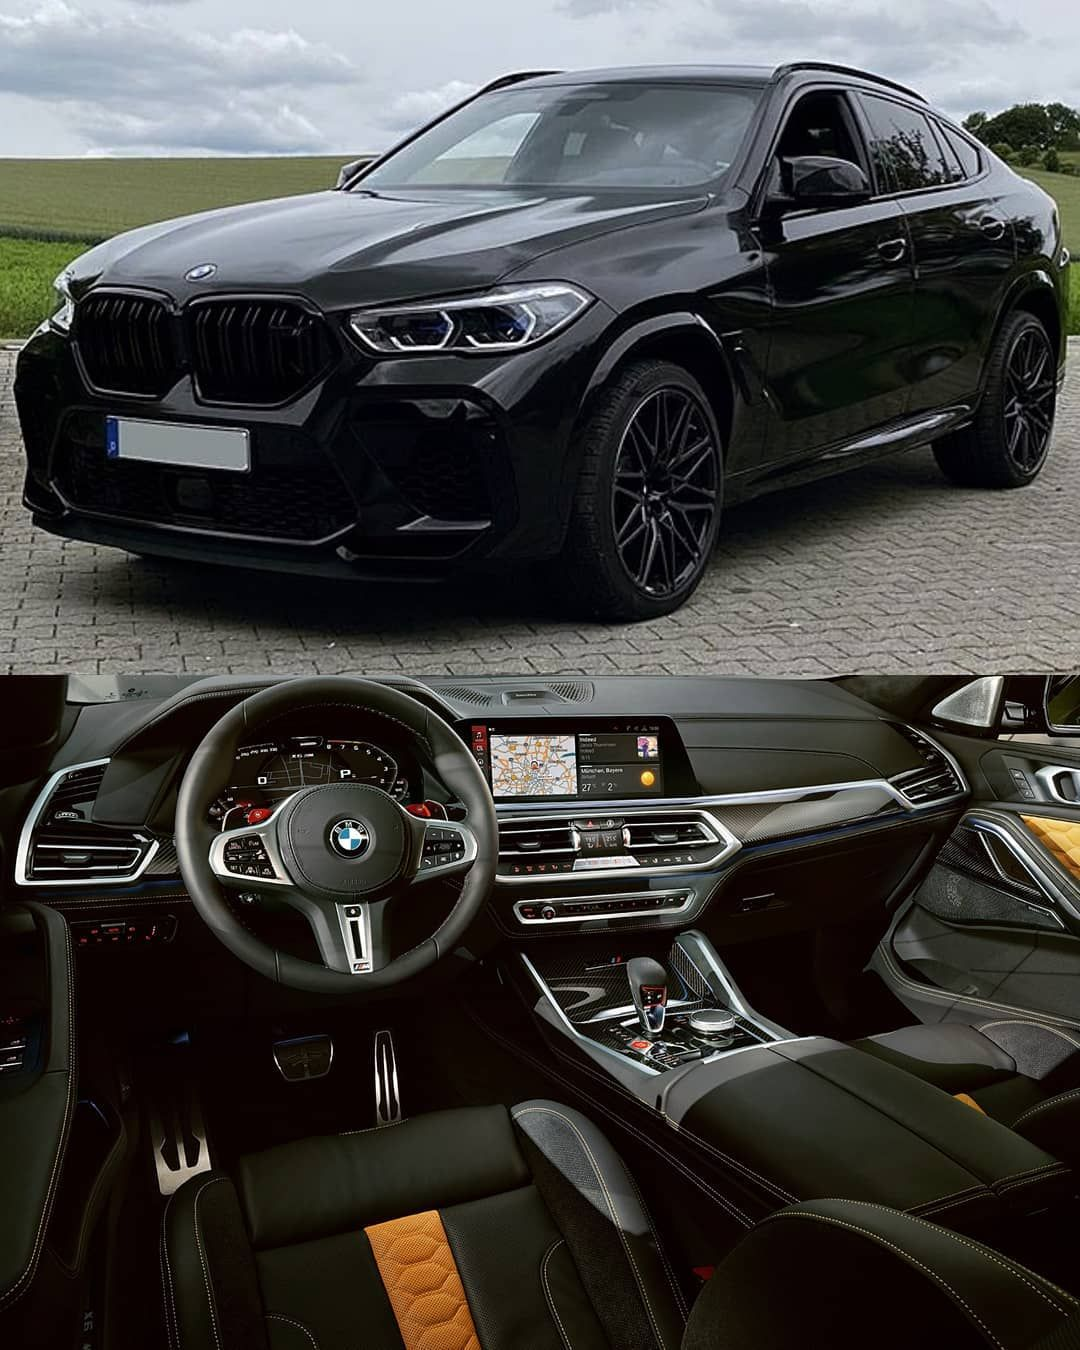 Luxury Is A Lifestyle On Instagram Bmw X6m Competition 2020 High Boss Life Highbosslife Bmw In 2020 Bmw Bmw X6 Super Cars